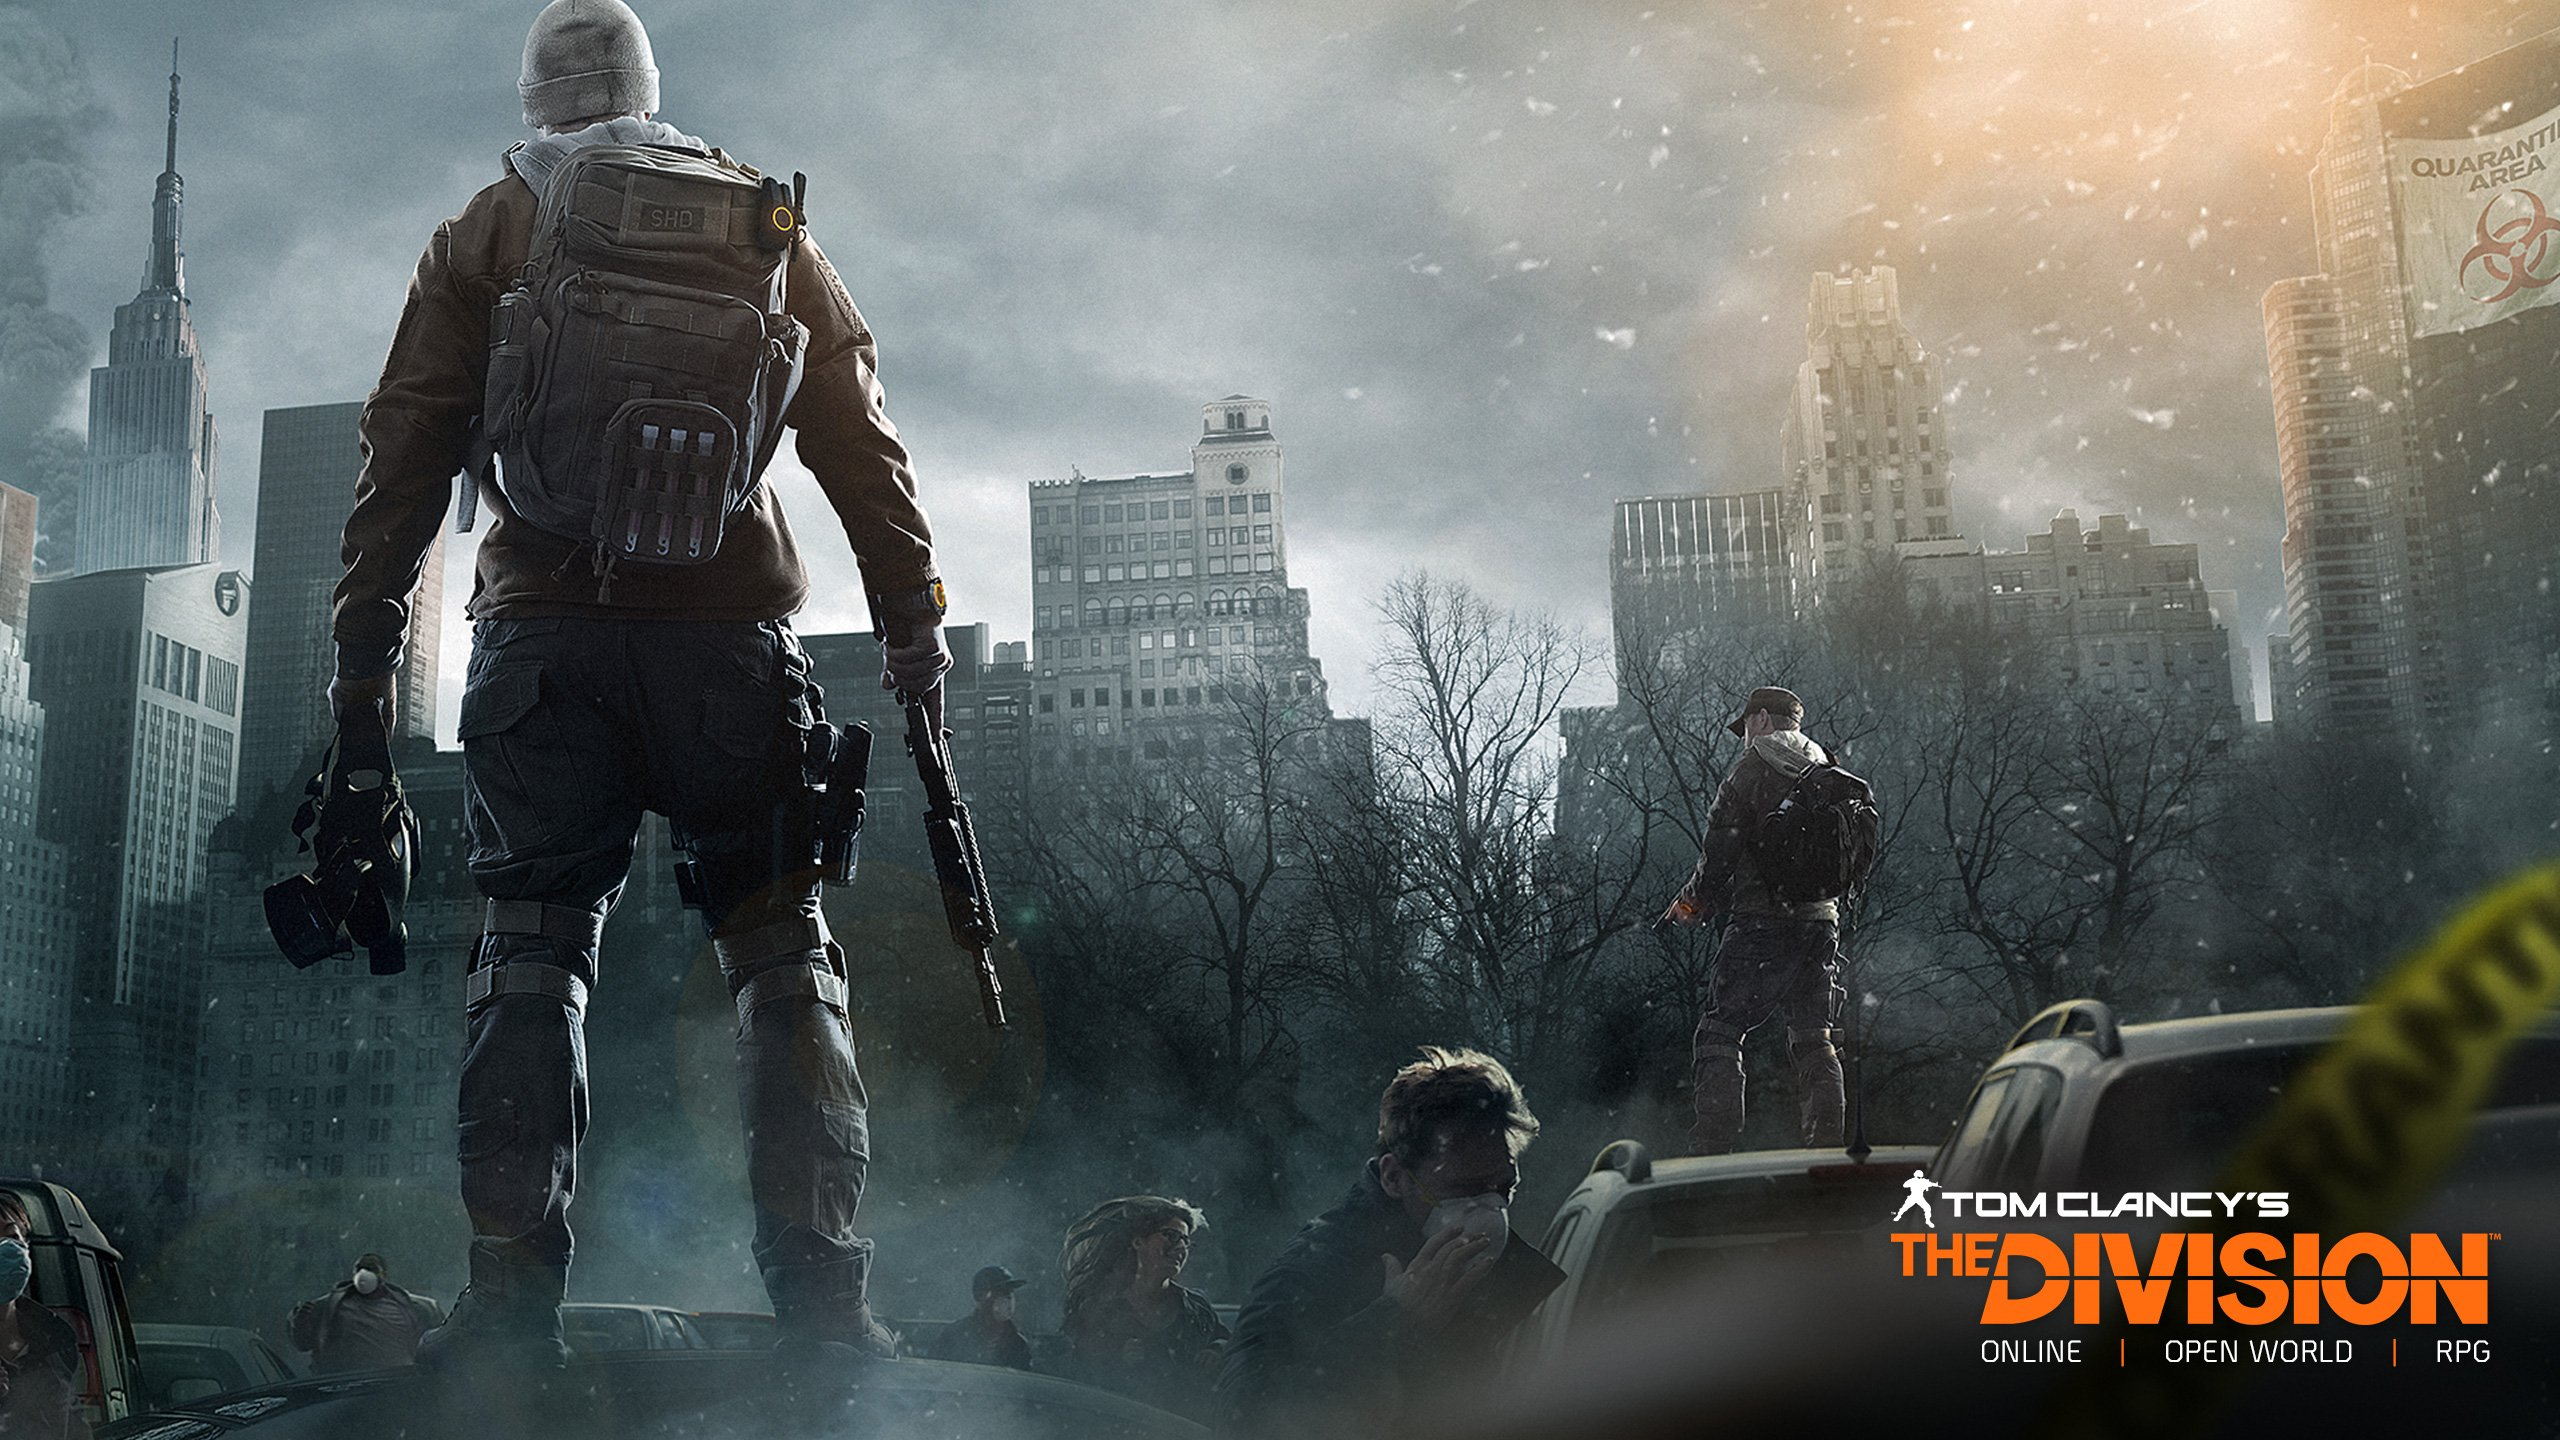 Tom Clancys The Division Game Wallpapers HD Wallpapers 2560x1440